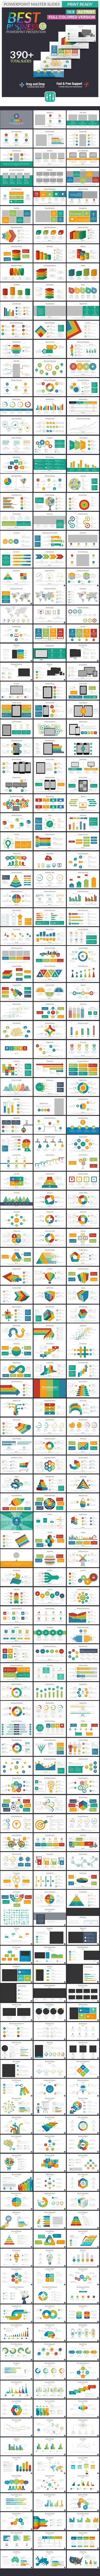 Info Graphic Business PowerPoint Template